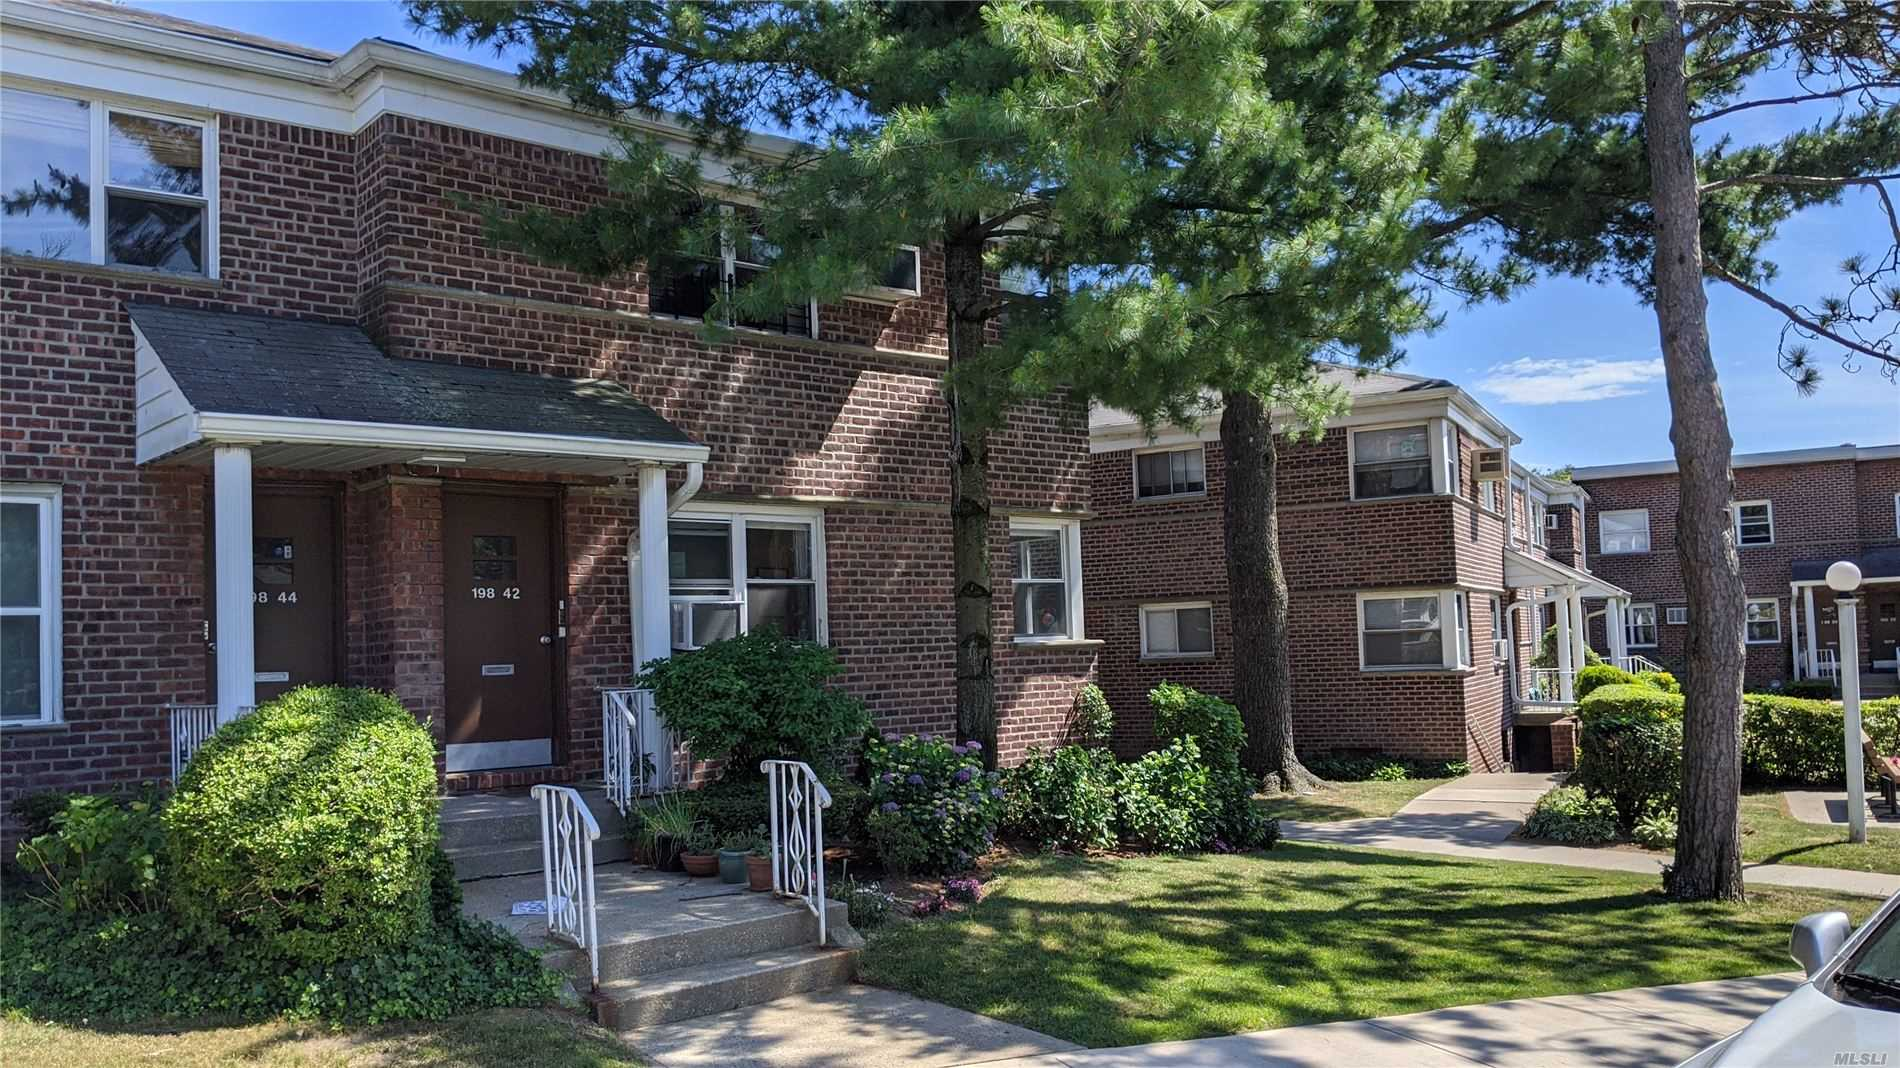 Listing in Holliswood, NY